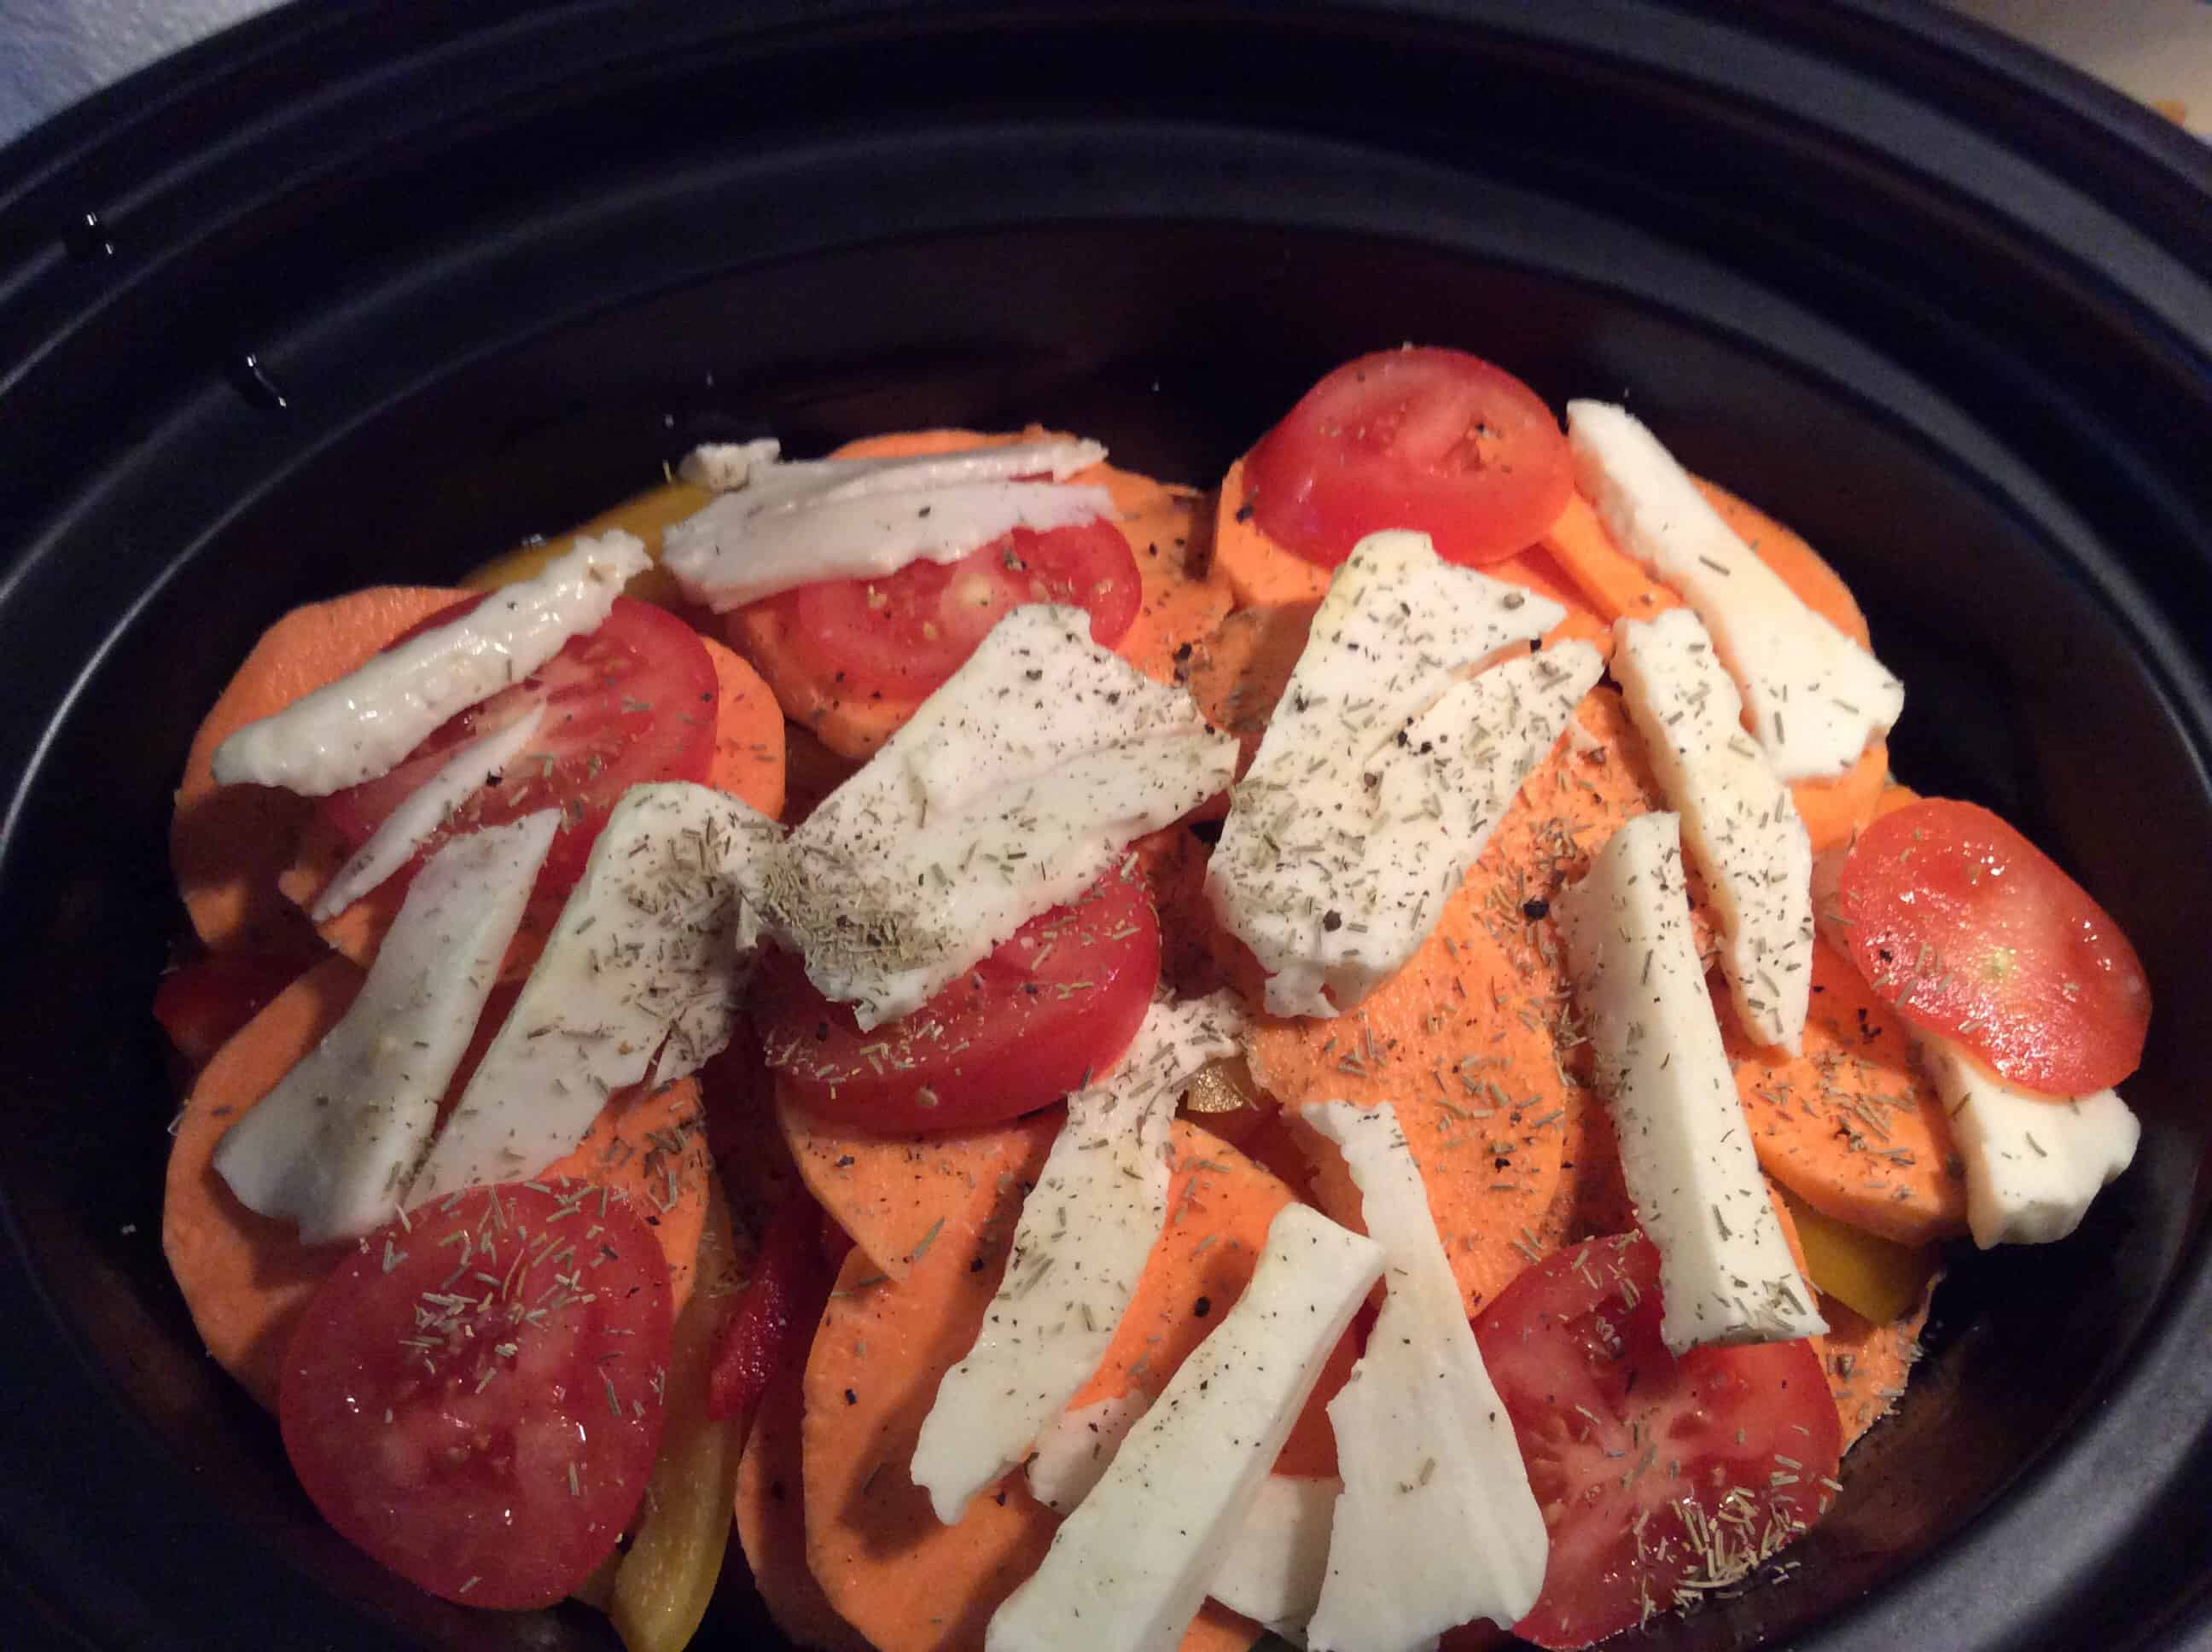 Slow Cooker Halloumi and Sweet Potato Bake